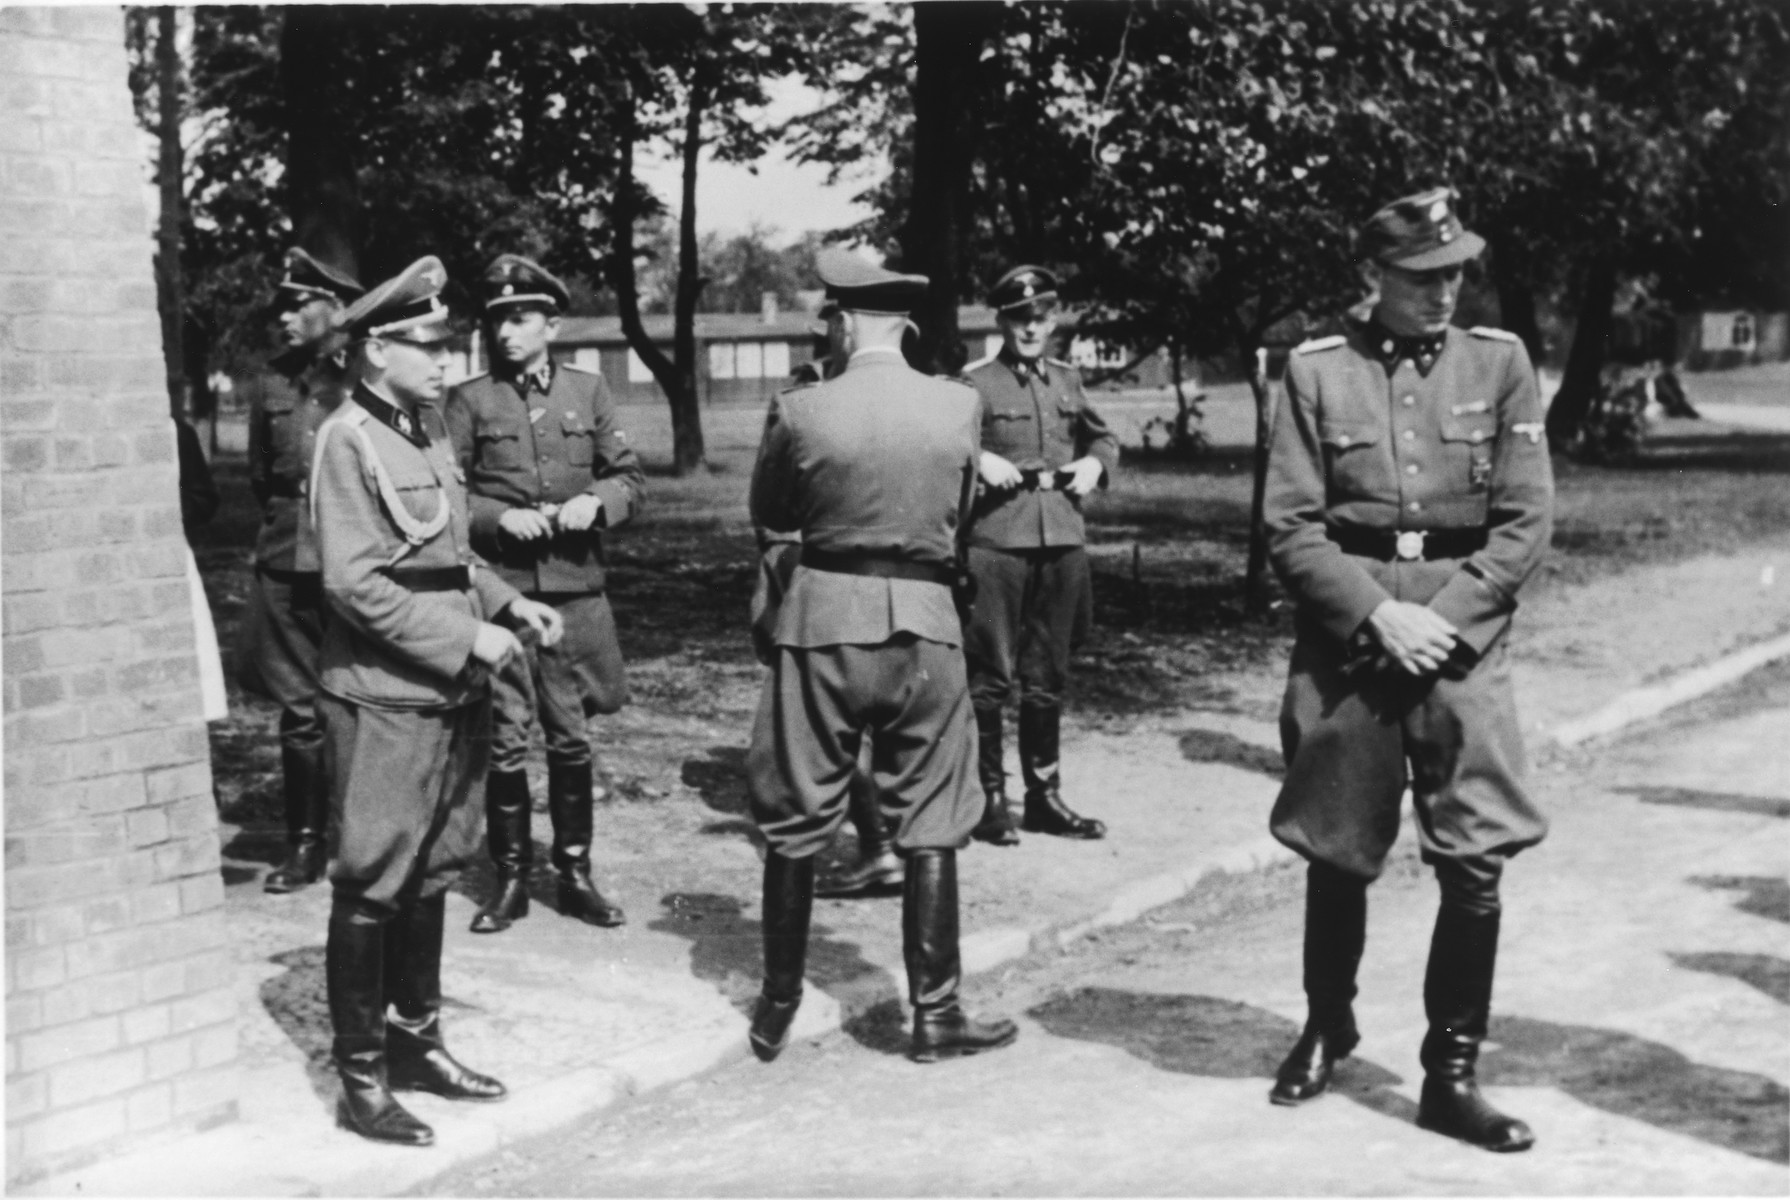 SS officers gather for the dedication ceremonies of the new SS hospital.  Pictured on the left is Karl Hoecker.  Behind him are Josef Kramer and Dr. Heinz Baumkoetter.